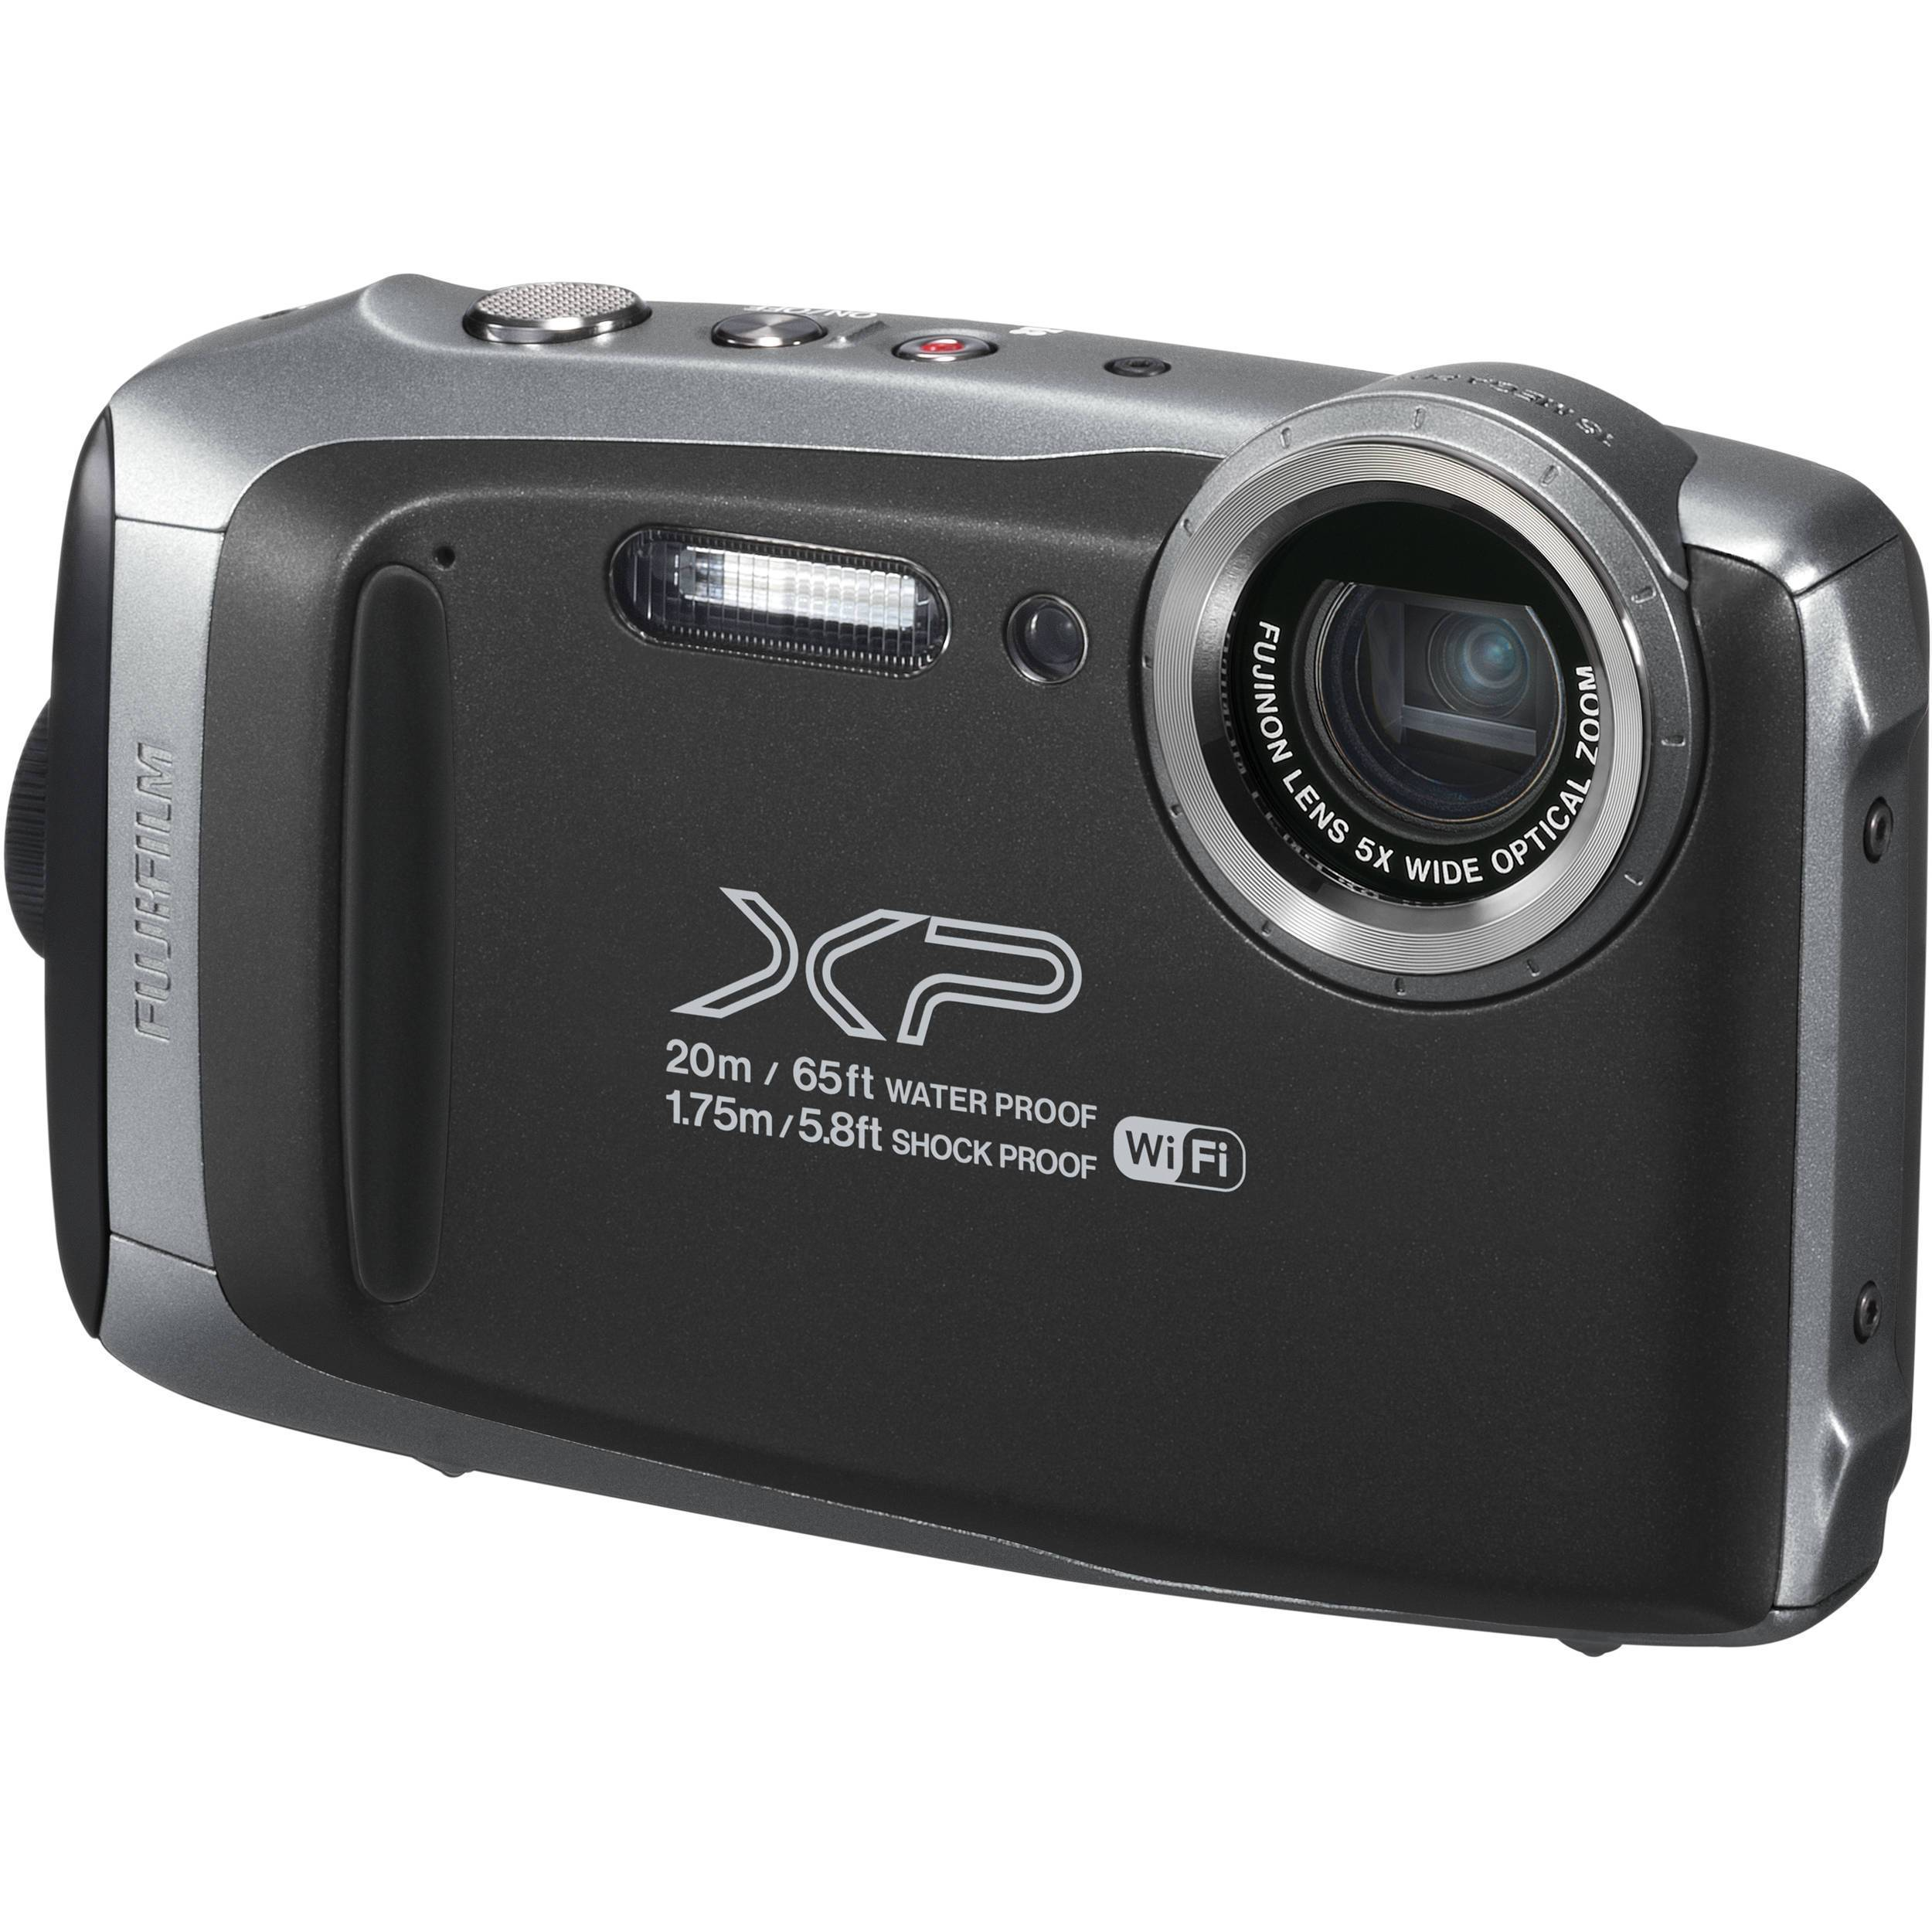 Fujifilm FinePix XP130 Digital Camera (Silver Grey) FREE DELIVERY